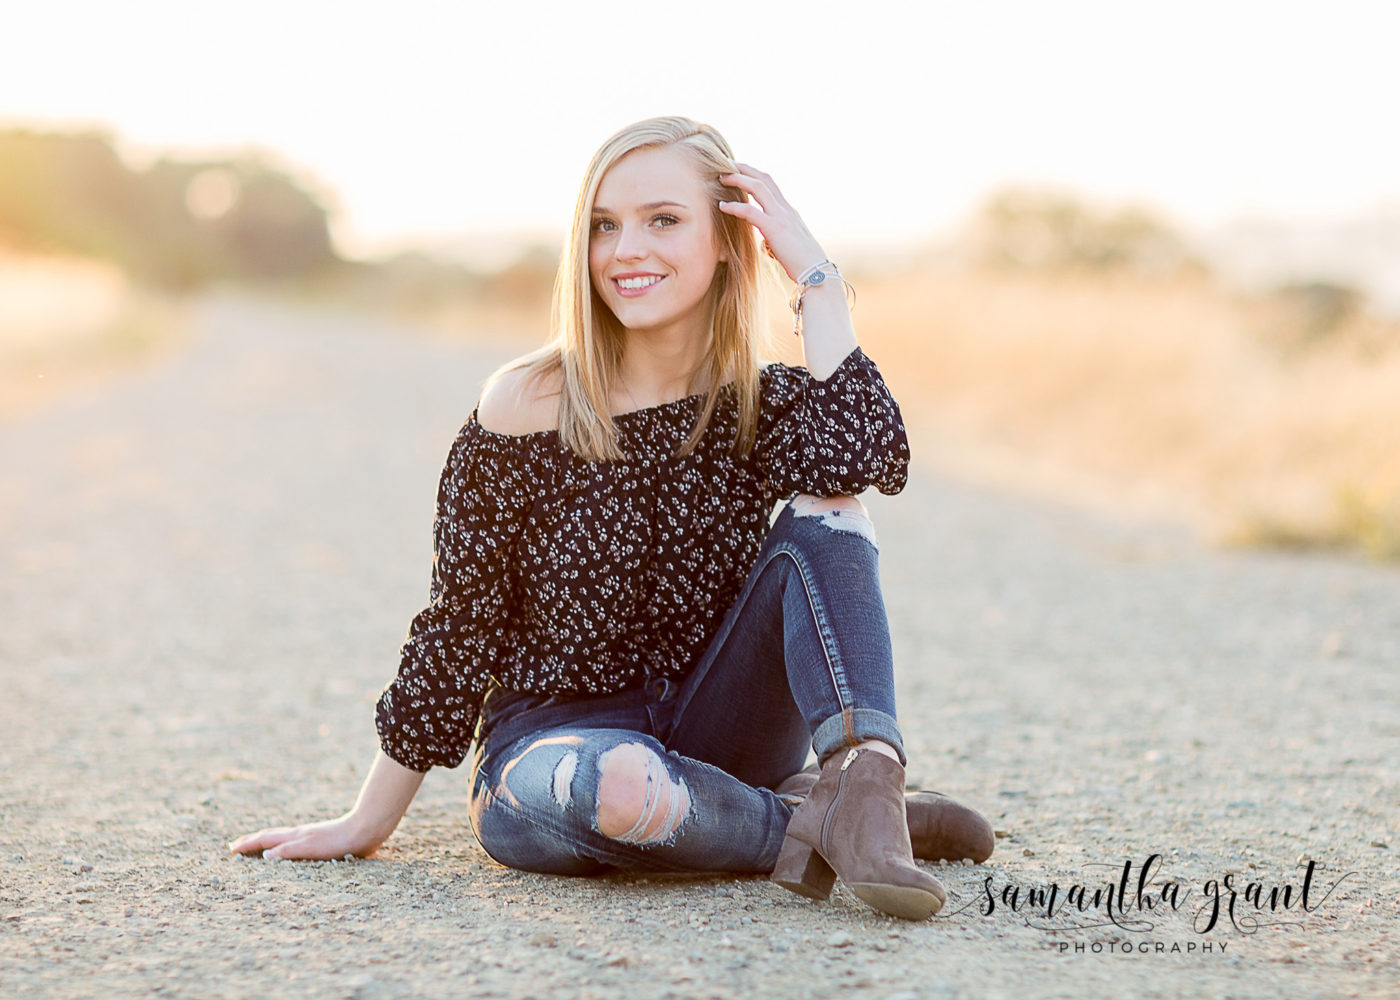 Senior portrait by Samantha Grant Photography